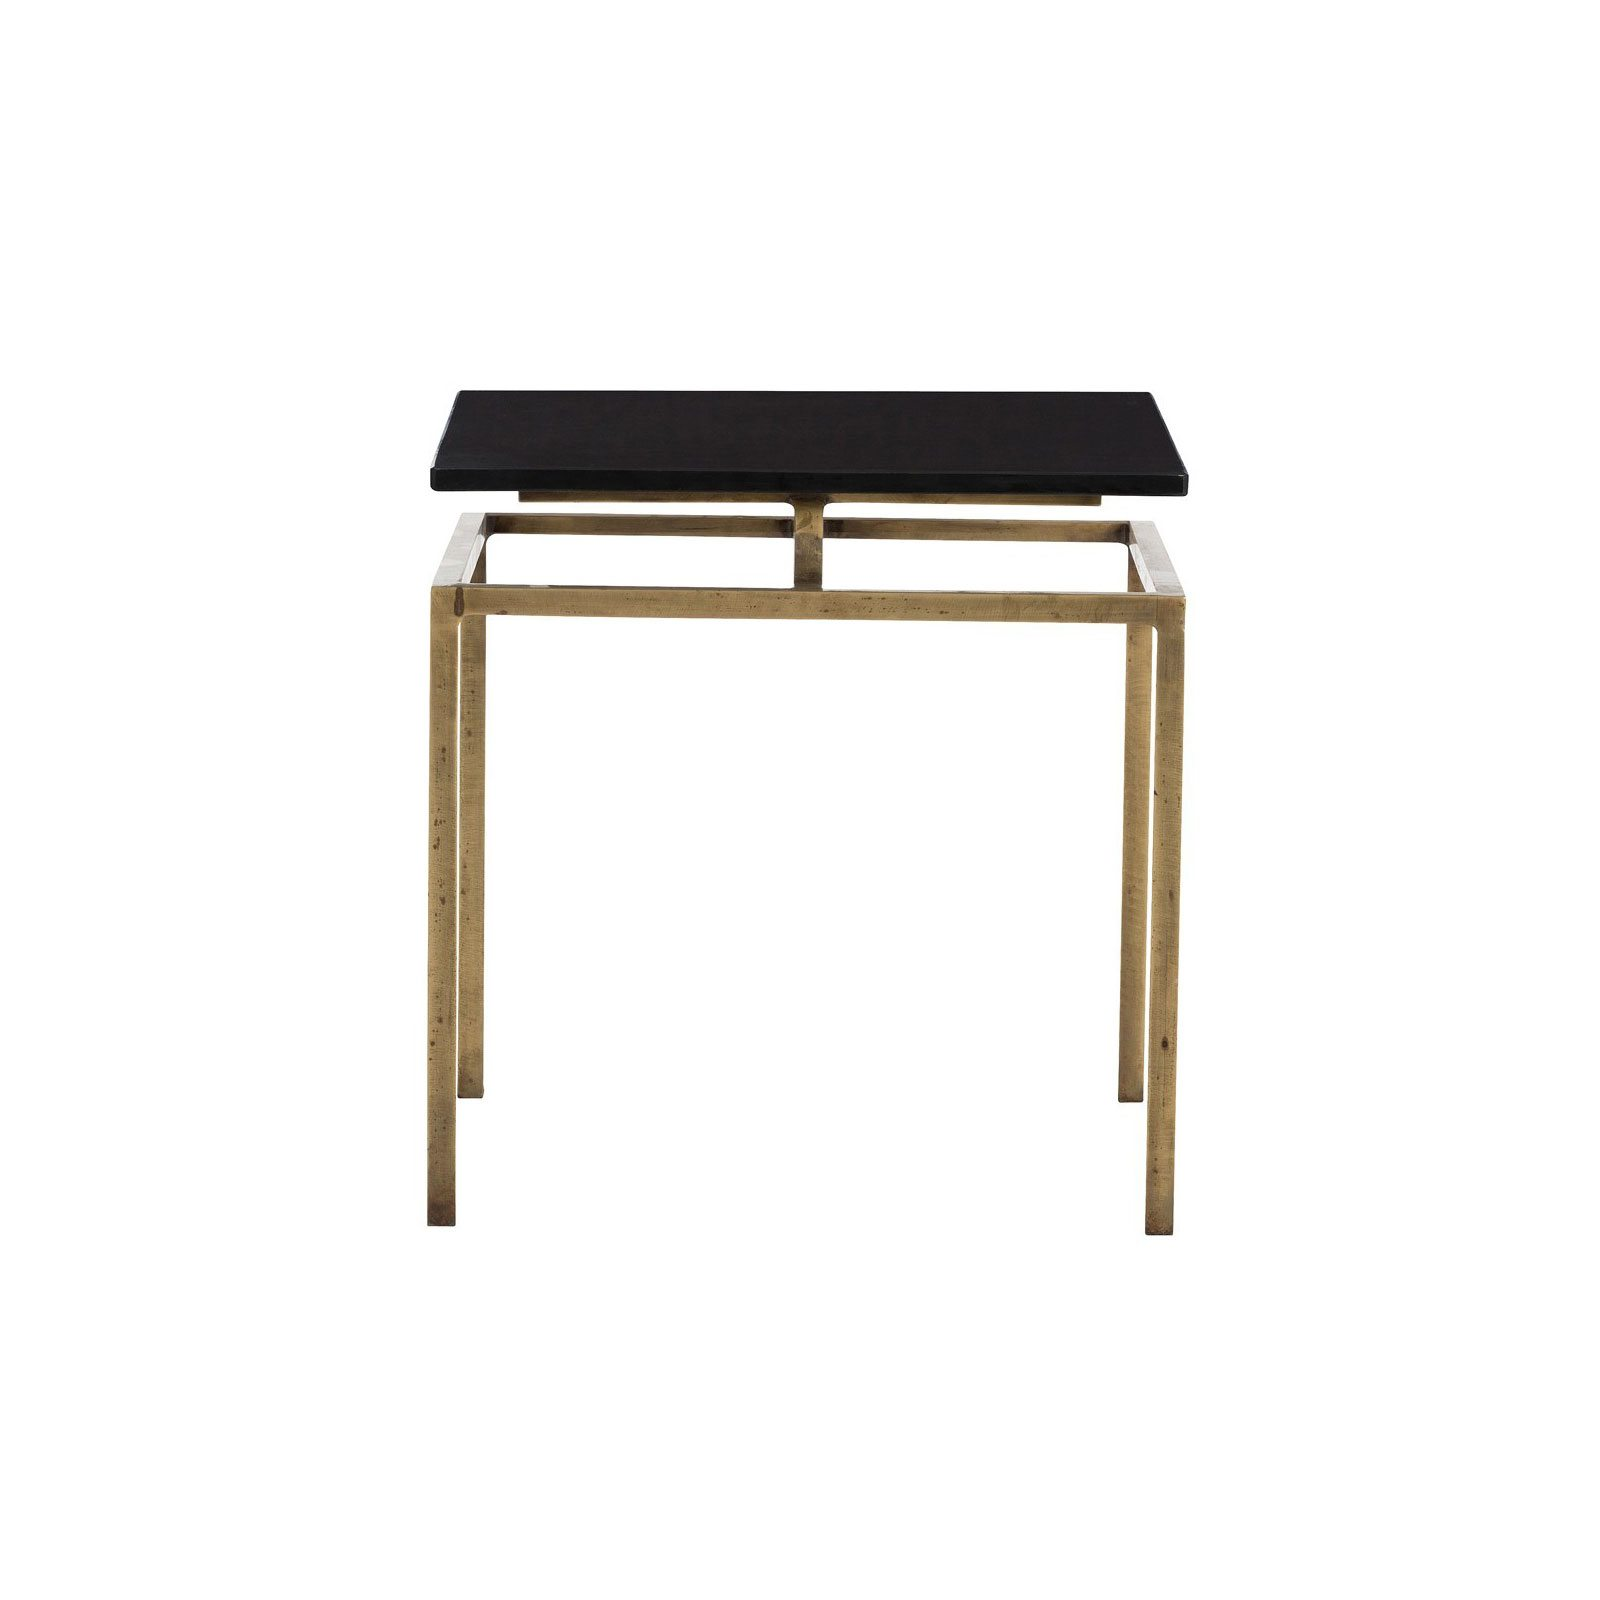 Luxury coffee side tables zara side table bonham for Table zara home